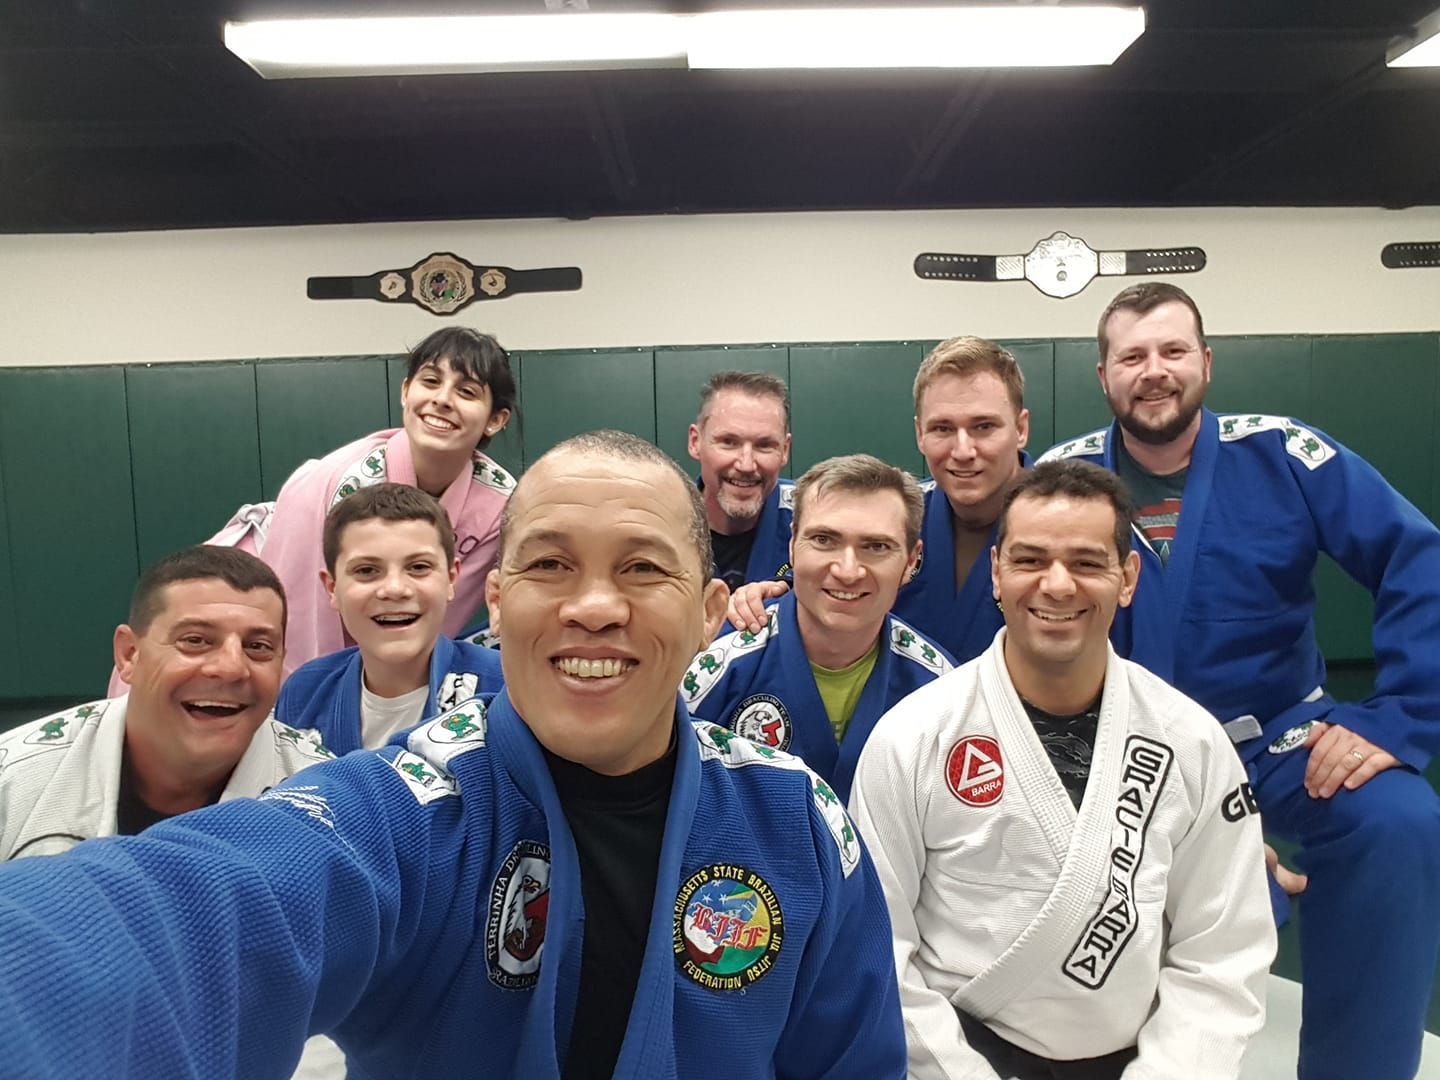 Fun Brazilian Jiu-Jitsu Classes in Massachussetts